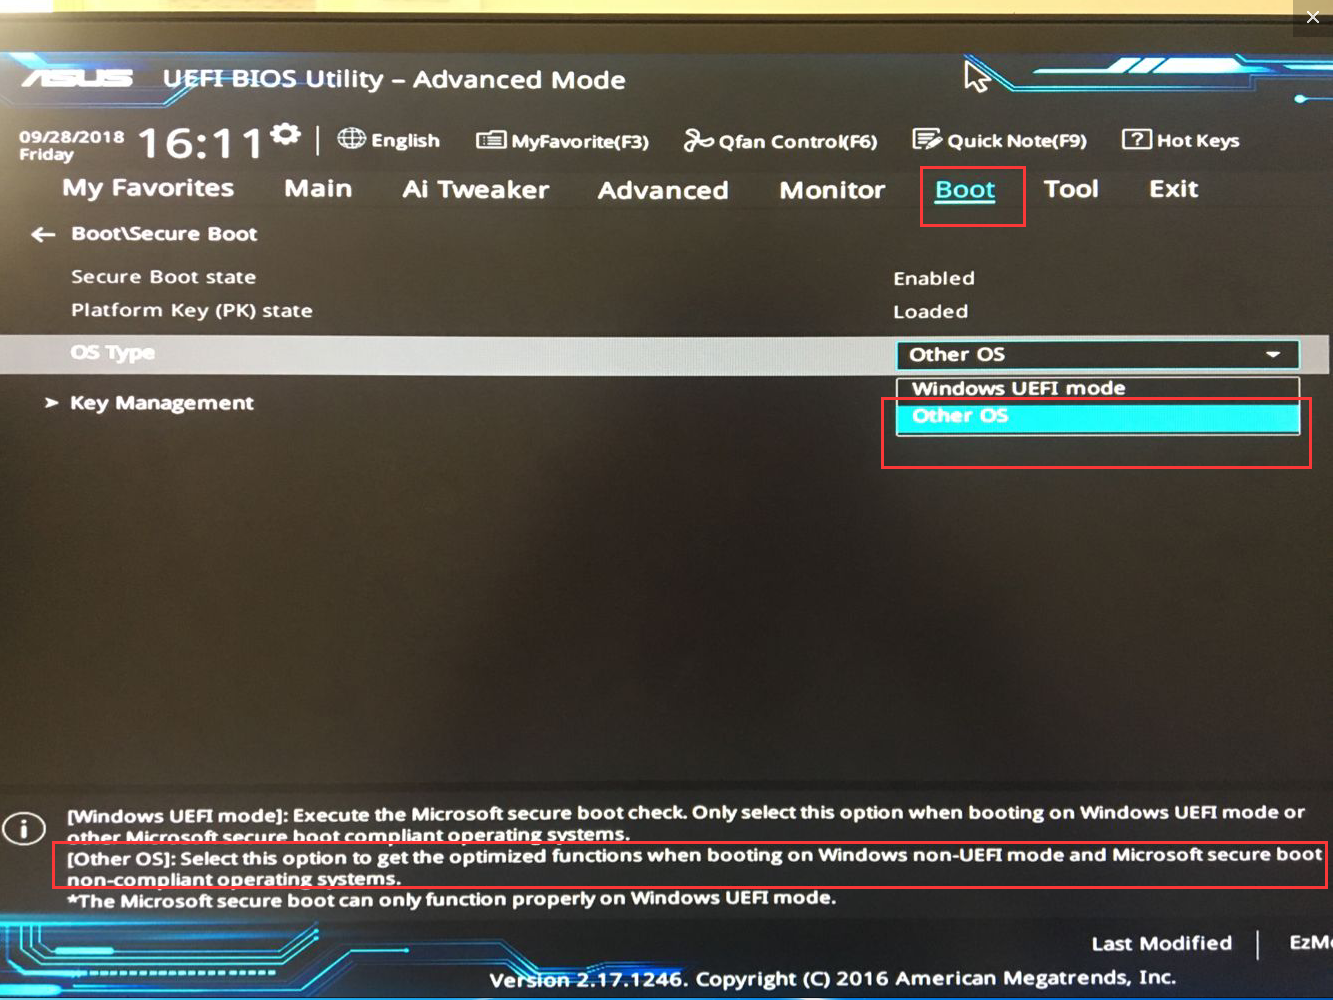 Solutions of Some Windows10 Users Cant Install MRT Driver Correctly